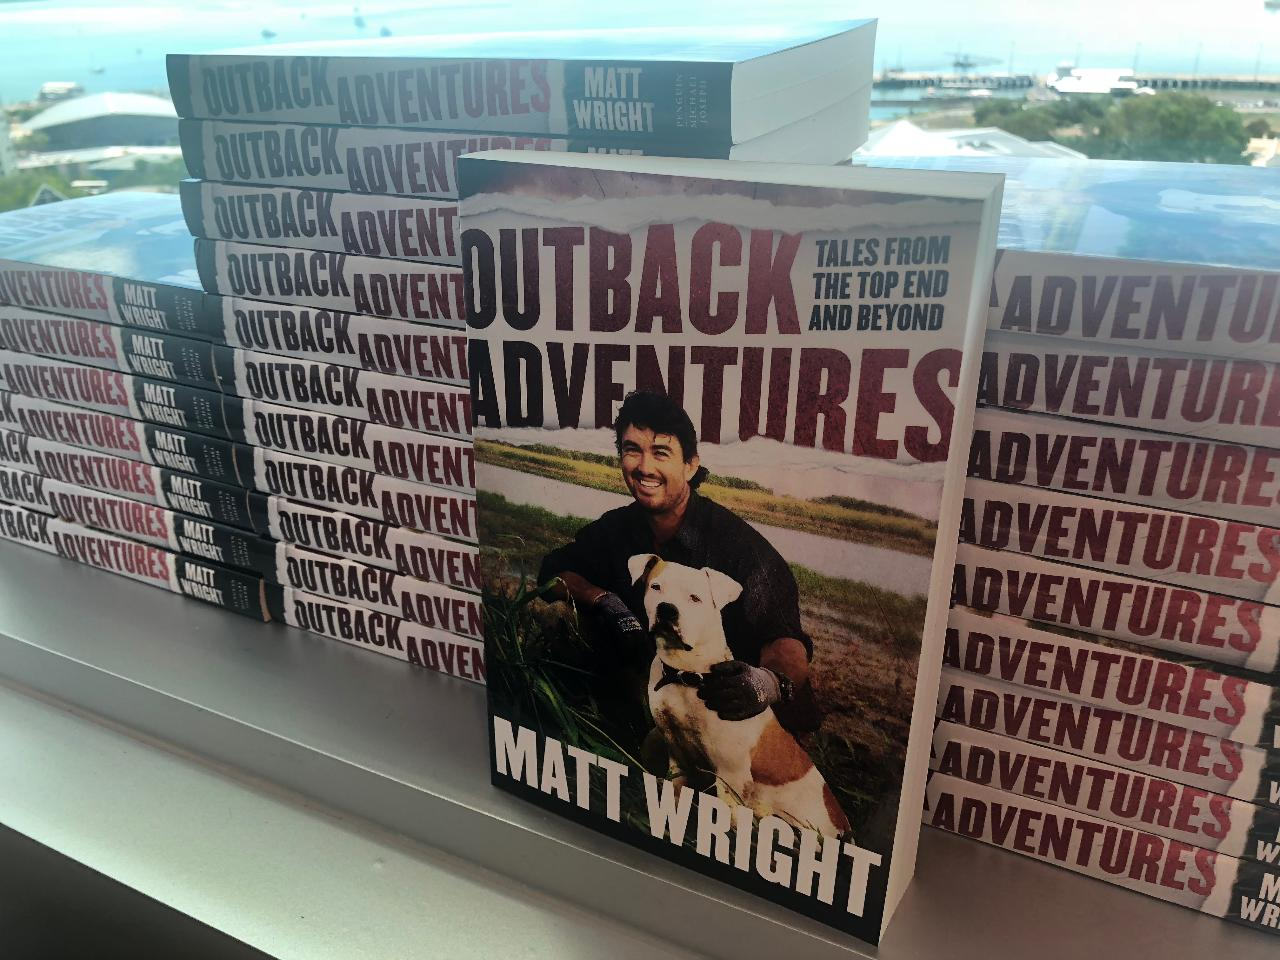 'Outback Adventures' By Matt Wright